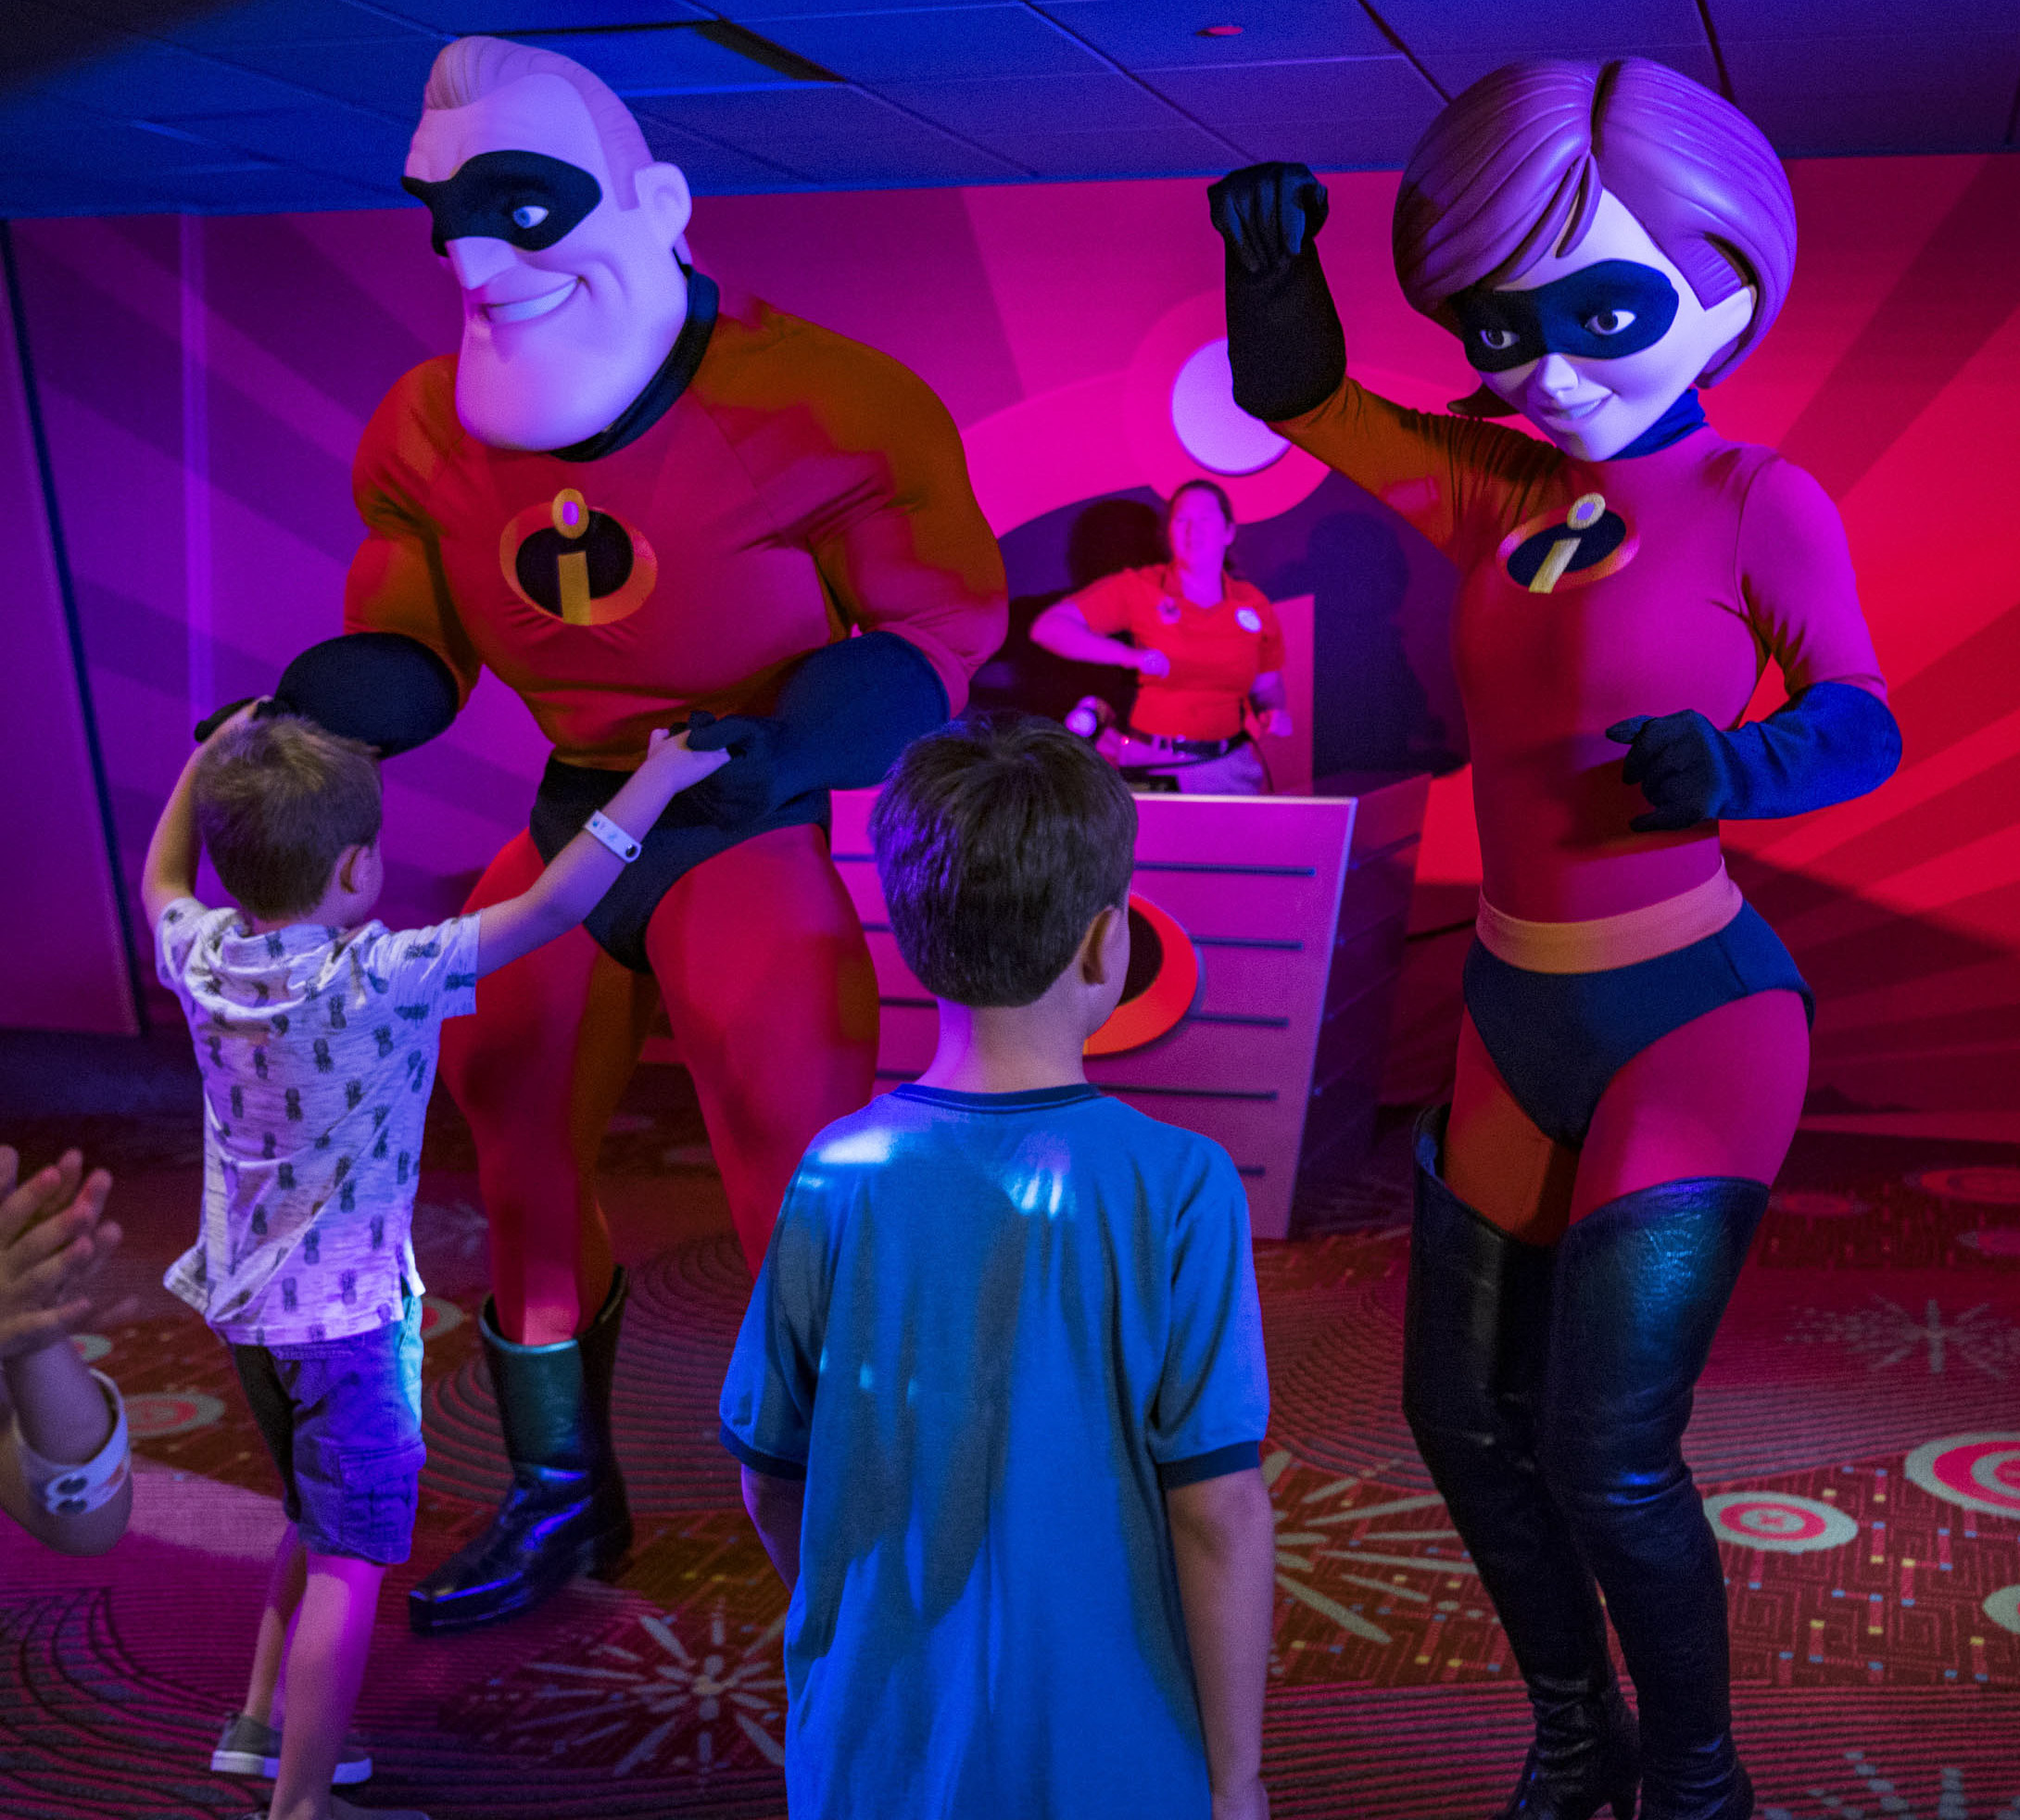 Inside the Pixar Play Zone